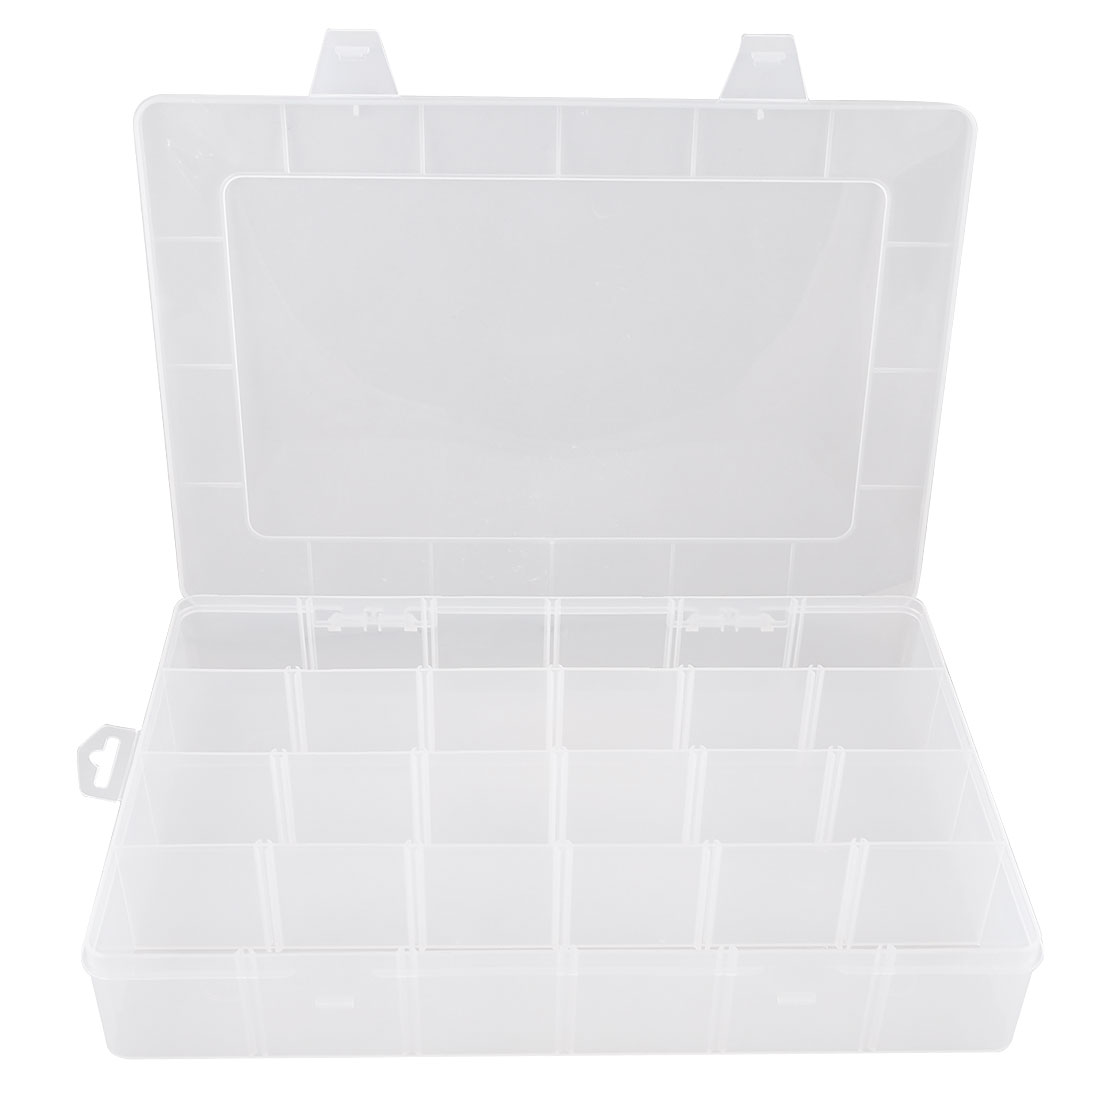 Plastic 24 Compartments Electronic Components Jewelry Storage Box Case Container